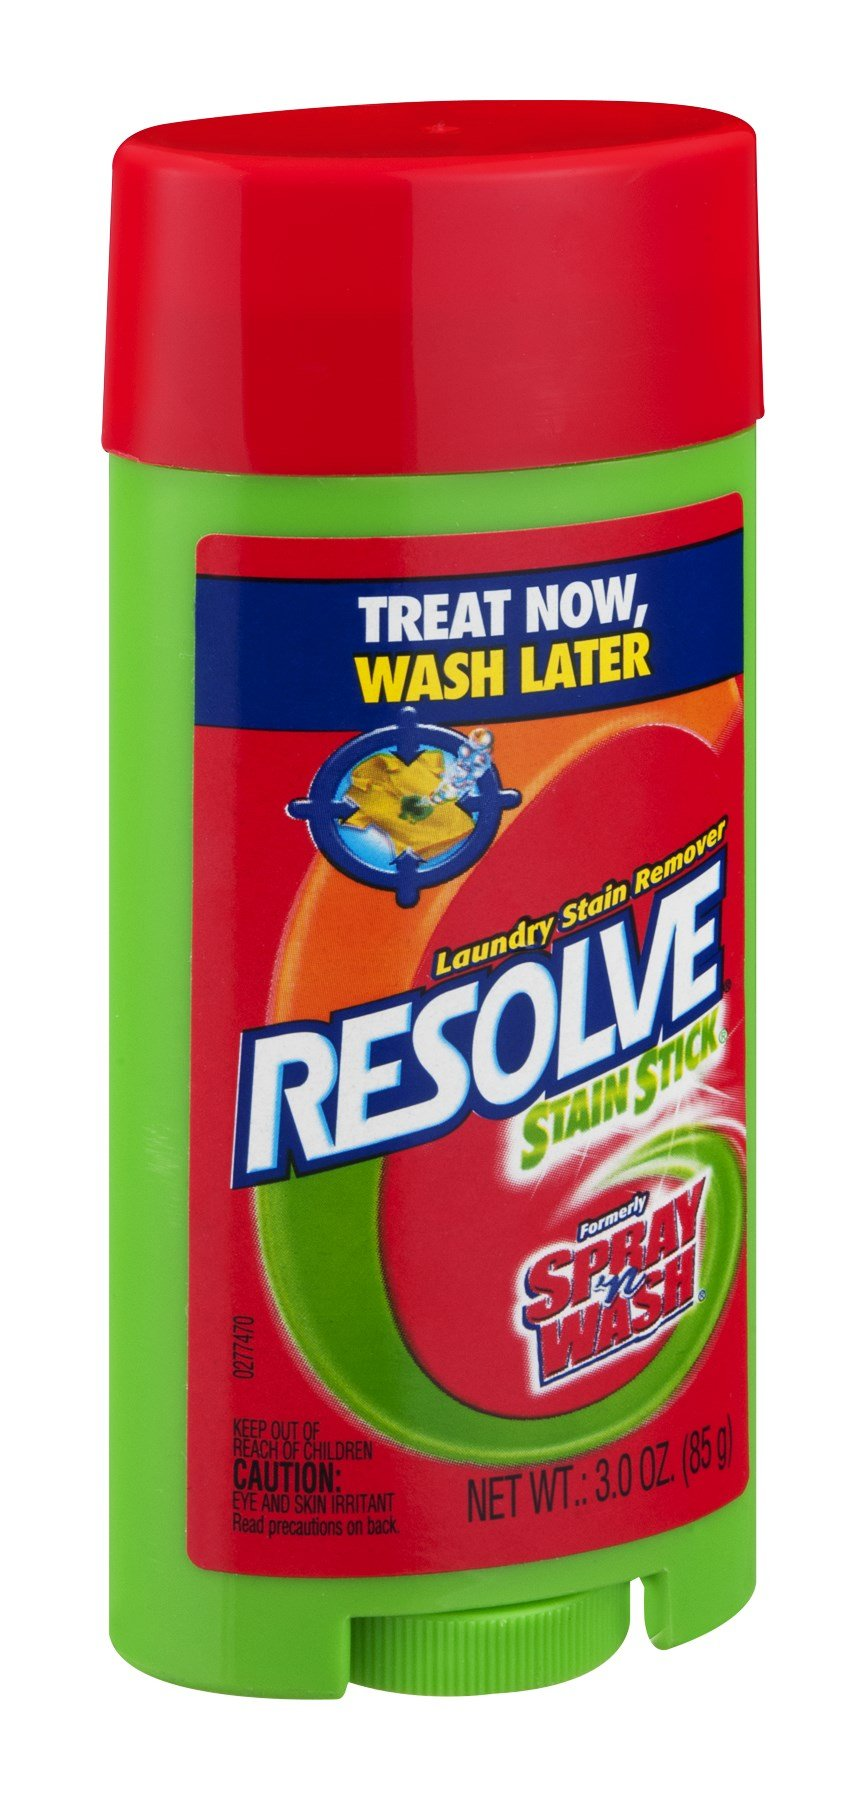 Resolve Laundry Stain Remover Stain Stick, Pack of 24